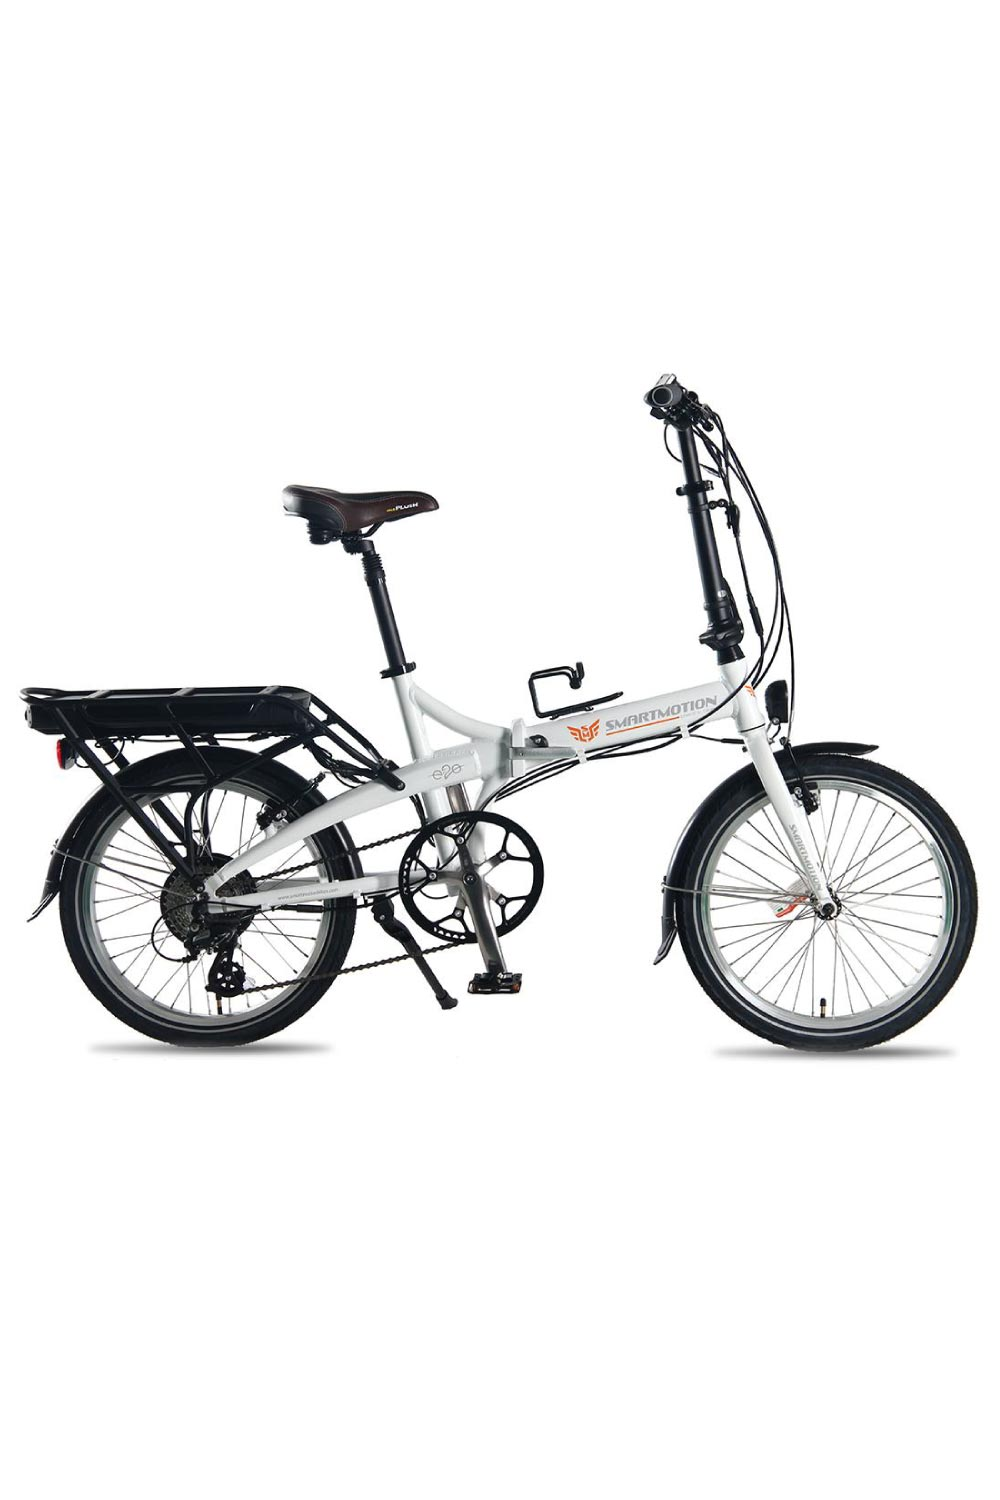 SMARTMOTION E-20 FOLDER E-BIKE | Buy e-bikes Newcastle